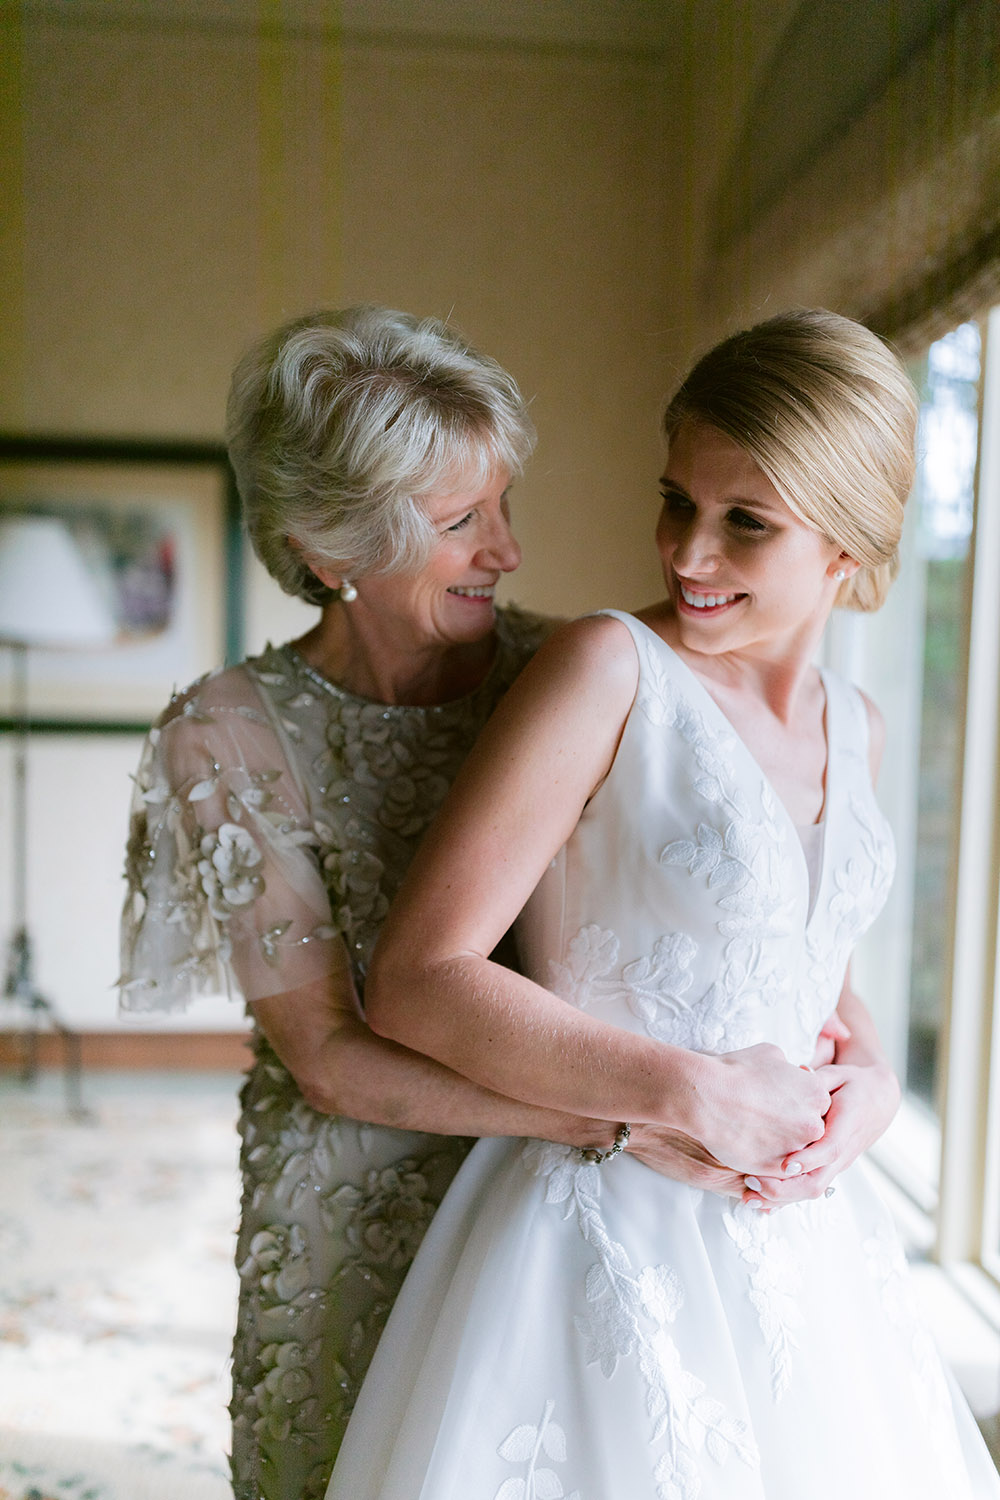 Mother of the bride and bride smiling at each other in a sunny interior space at Royal Oaks Country Club.